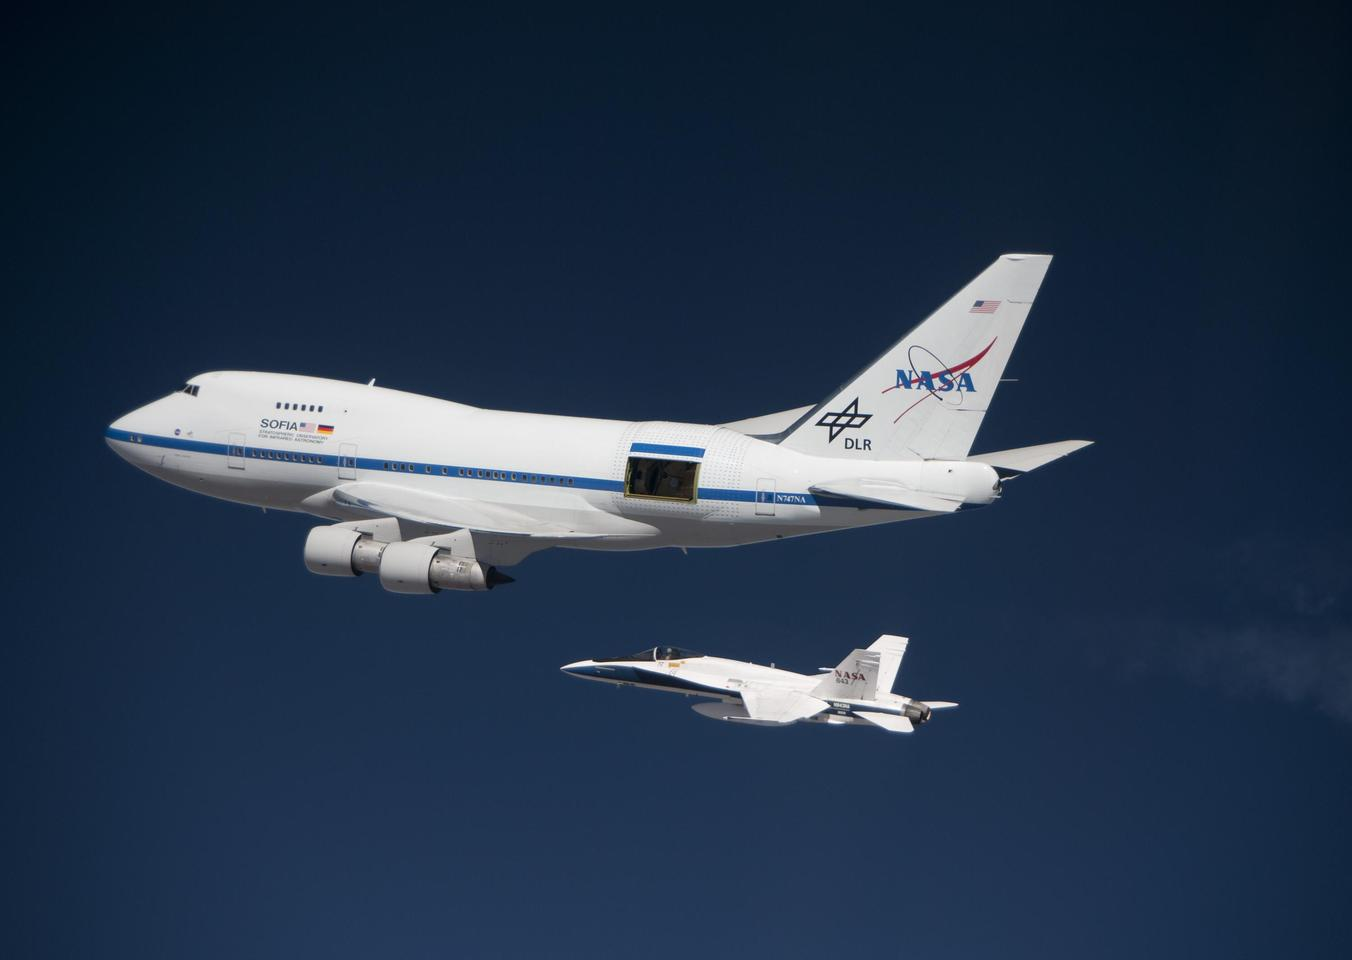 SOFIA, with her cavity doors open and a NASA F/A-18 in tow (Photo: NASA/Jim Ross)